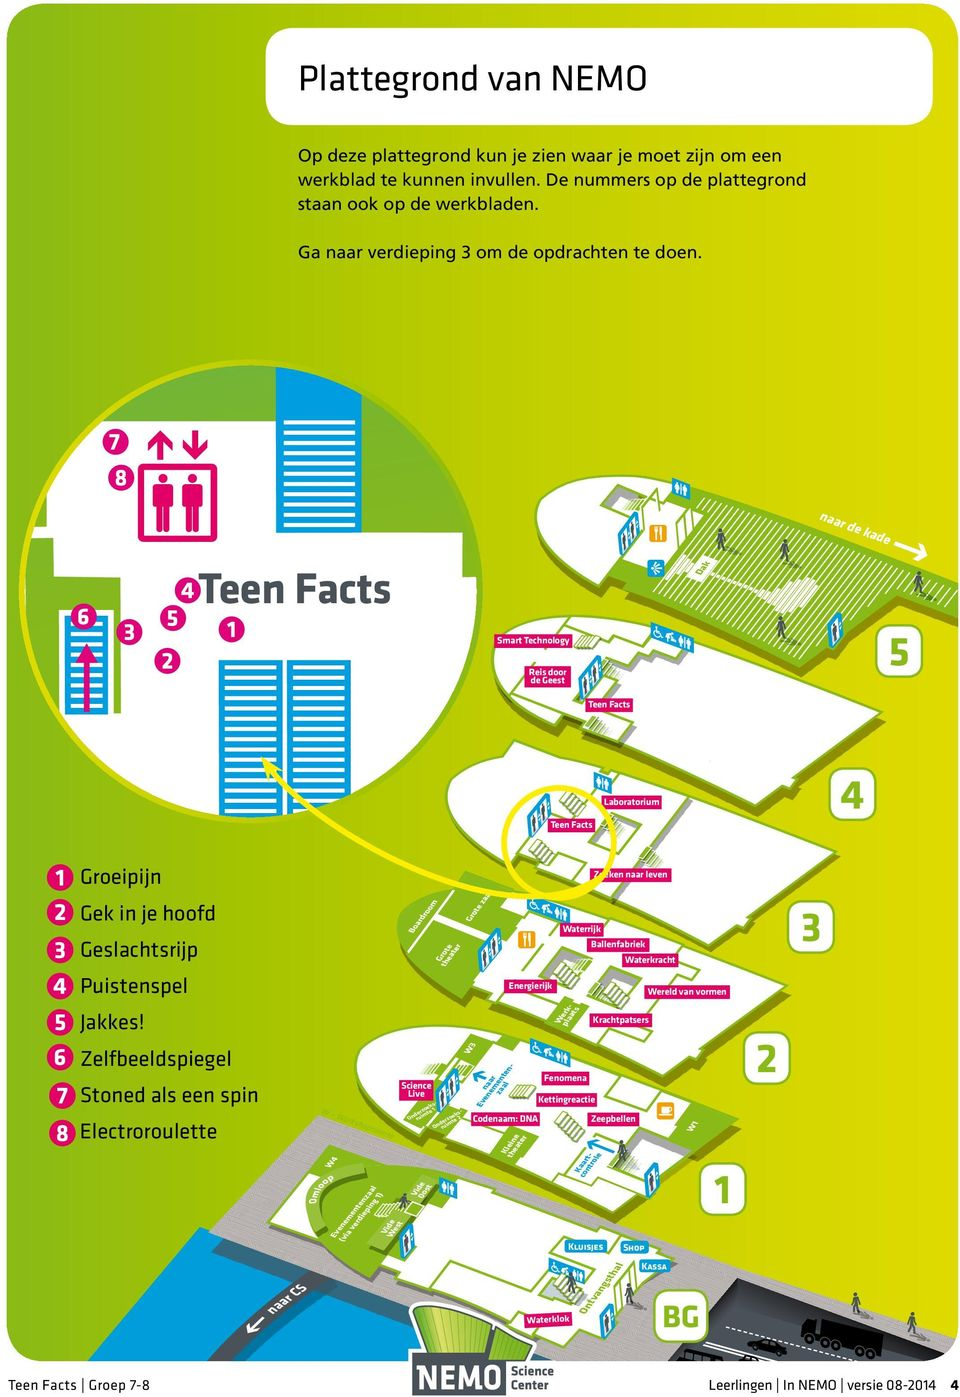 naar de kade Teen Facts Foyer (beperkt open) Dak Smart Technology Reis door de Geest 5 Teen Facts Teen Facts Laboratorium 4 1 Groeipijn Zoeken naar leven 2 3 Gek in je hoofd Geslachtsrijp Boardroom